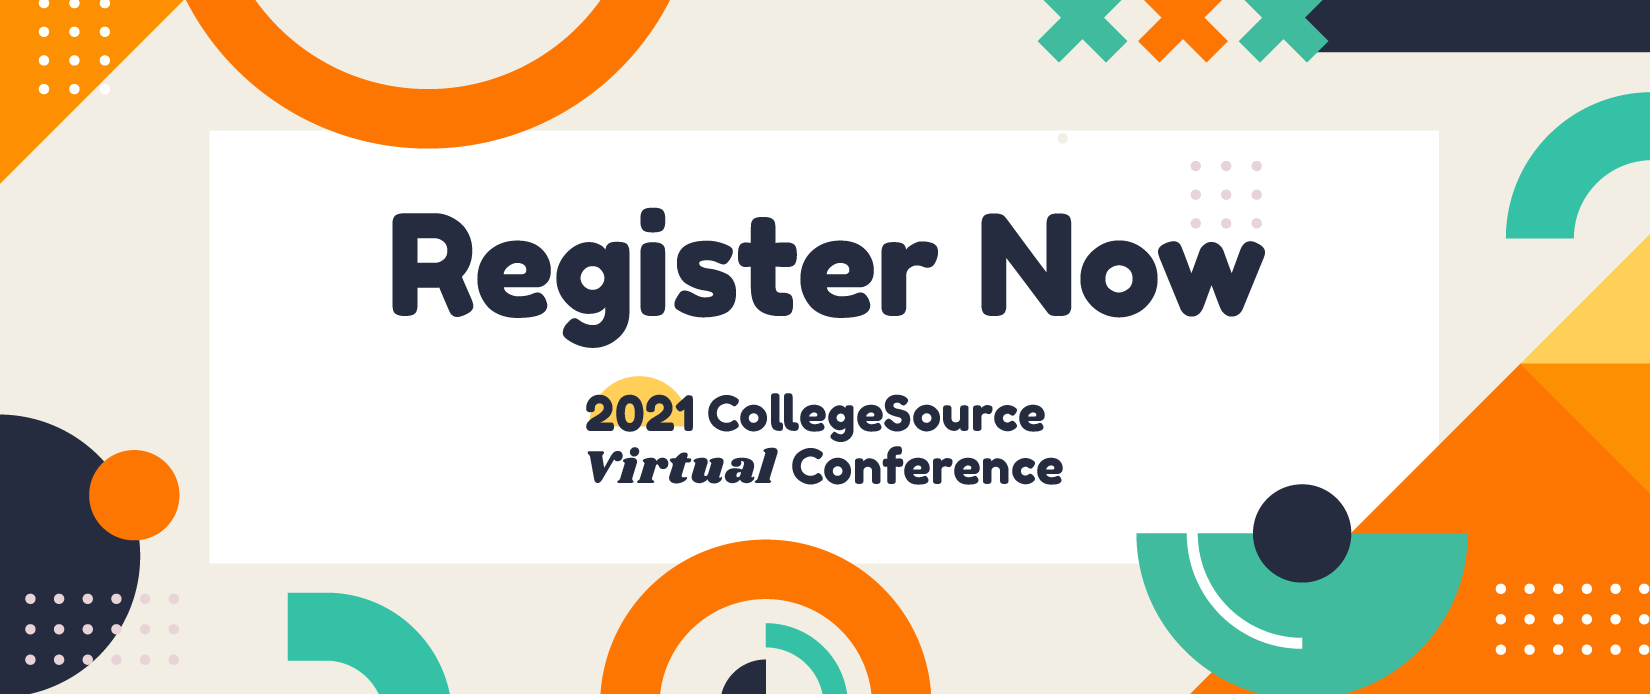 Register Now for the 2021 CollegeSource Virtual Conference